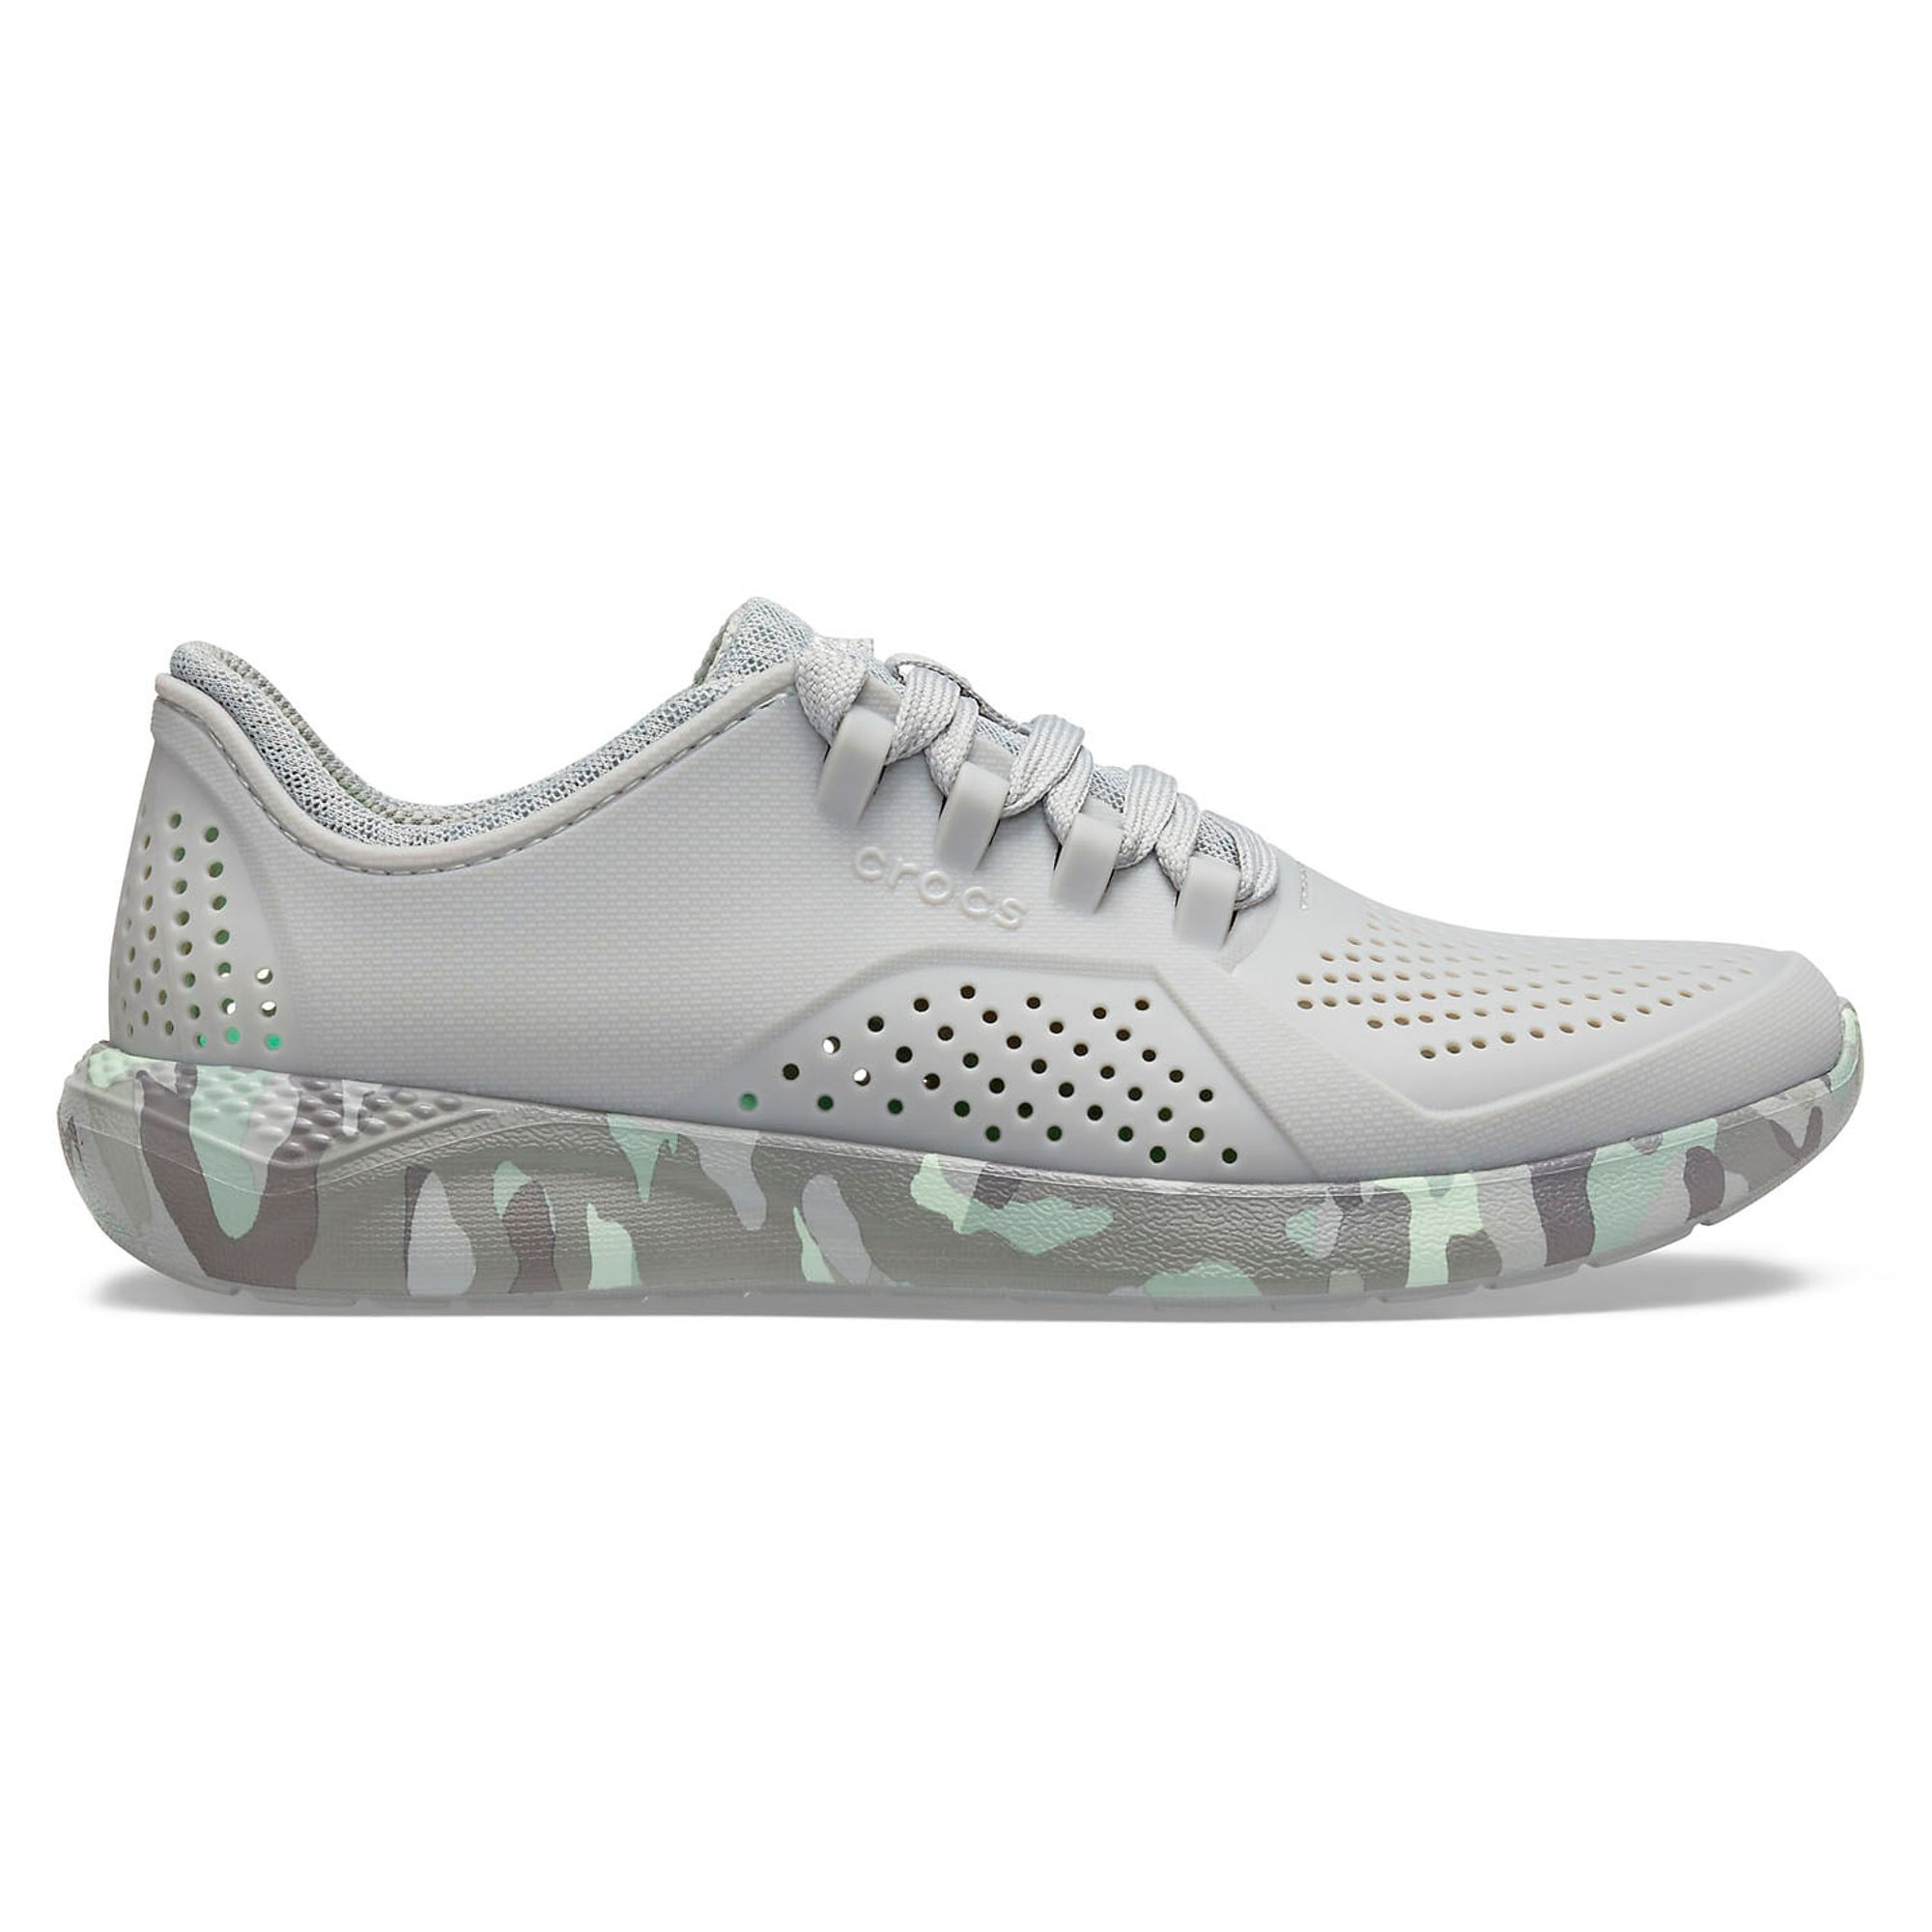 Womens-LiteRide-Printed-Camo-Pacer-Color-Gris-Talla-W7